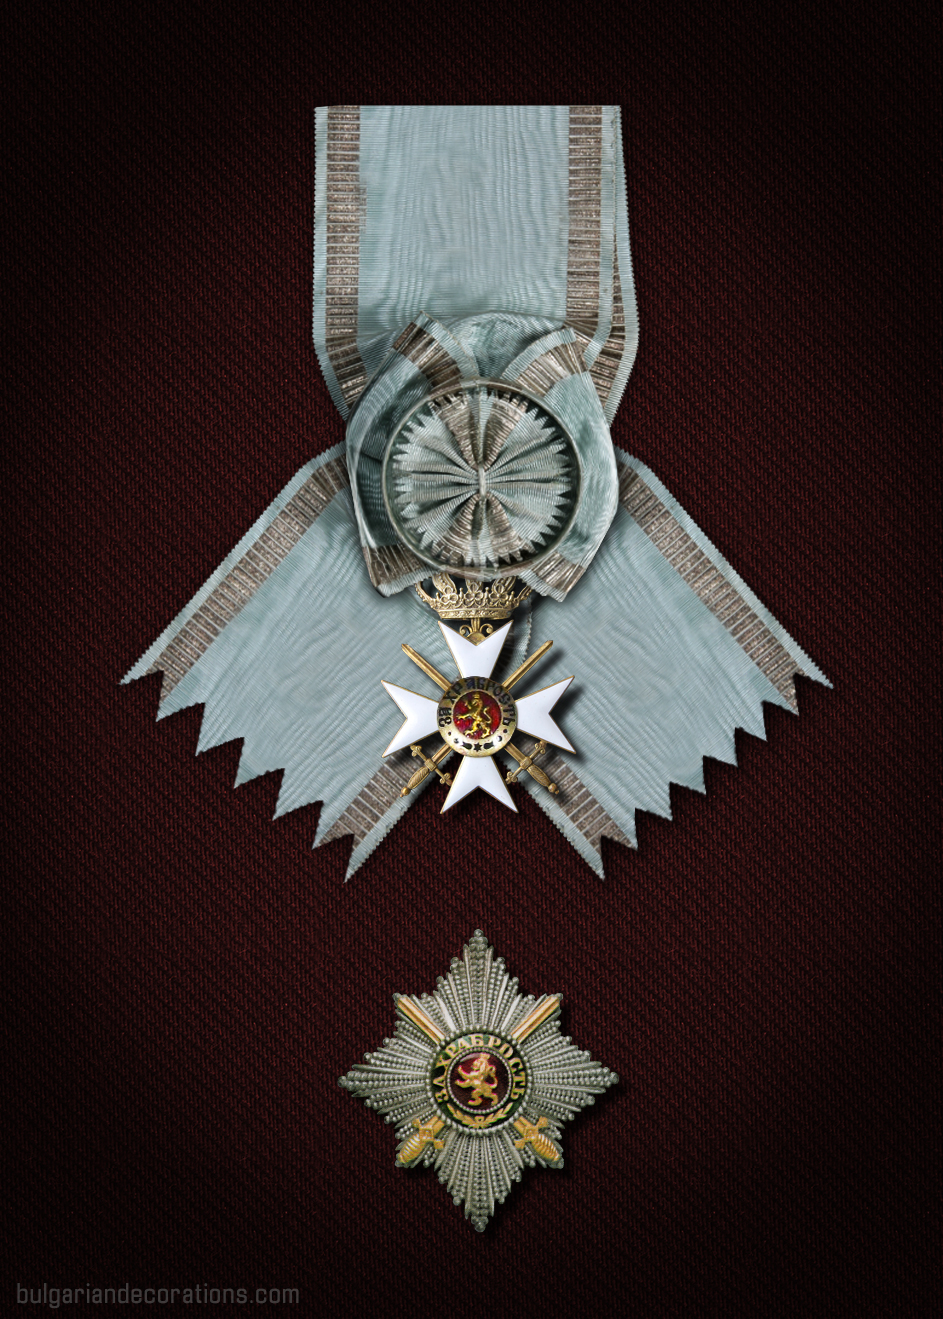 Prince Ferdinand I Grand cross set (reconstruction)